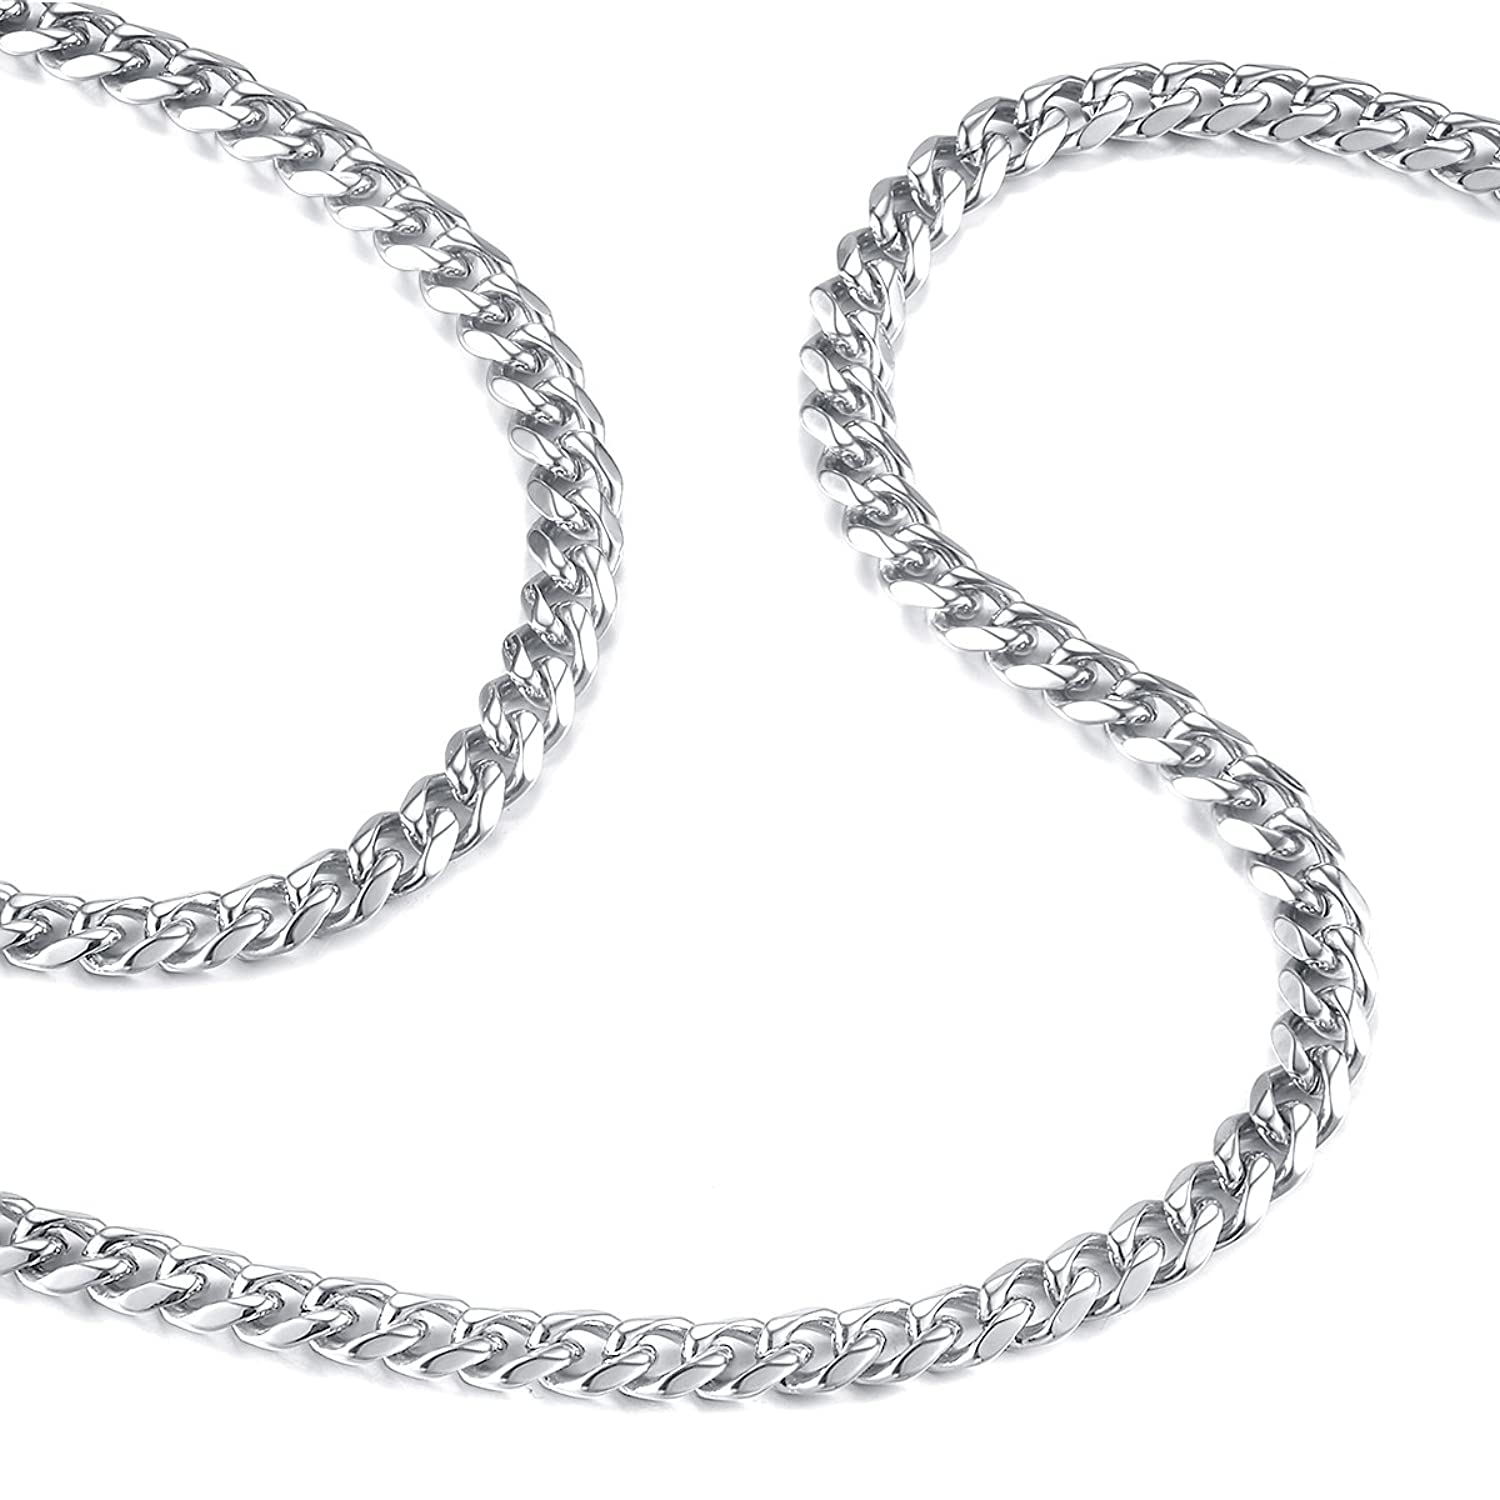 6243ac8276019 FOSIR 6mm Mens Necklace Stainless Steel Silver Curb Chain 18